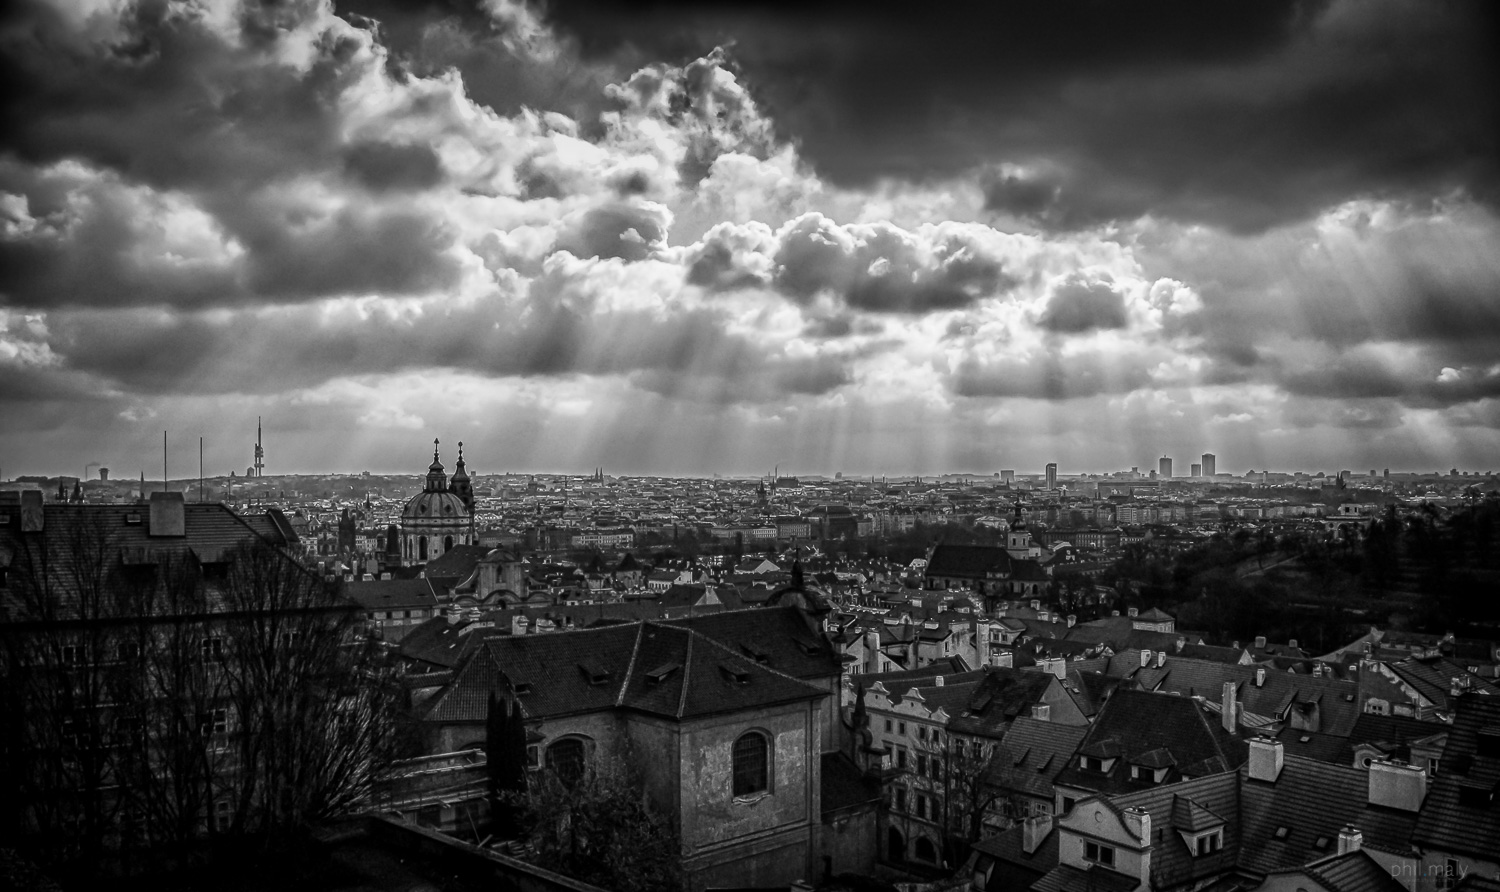 Cloudy sky with rays of light over the city of Prag